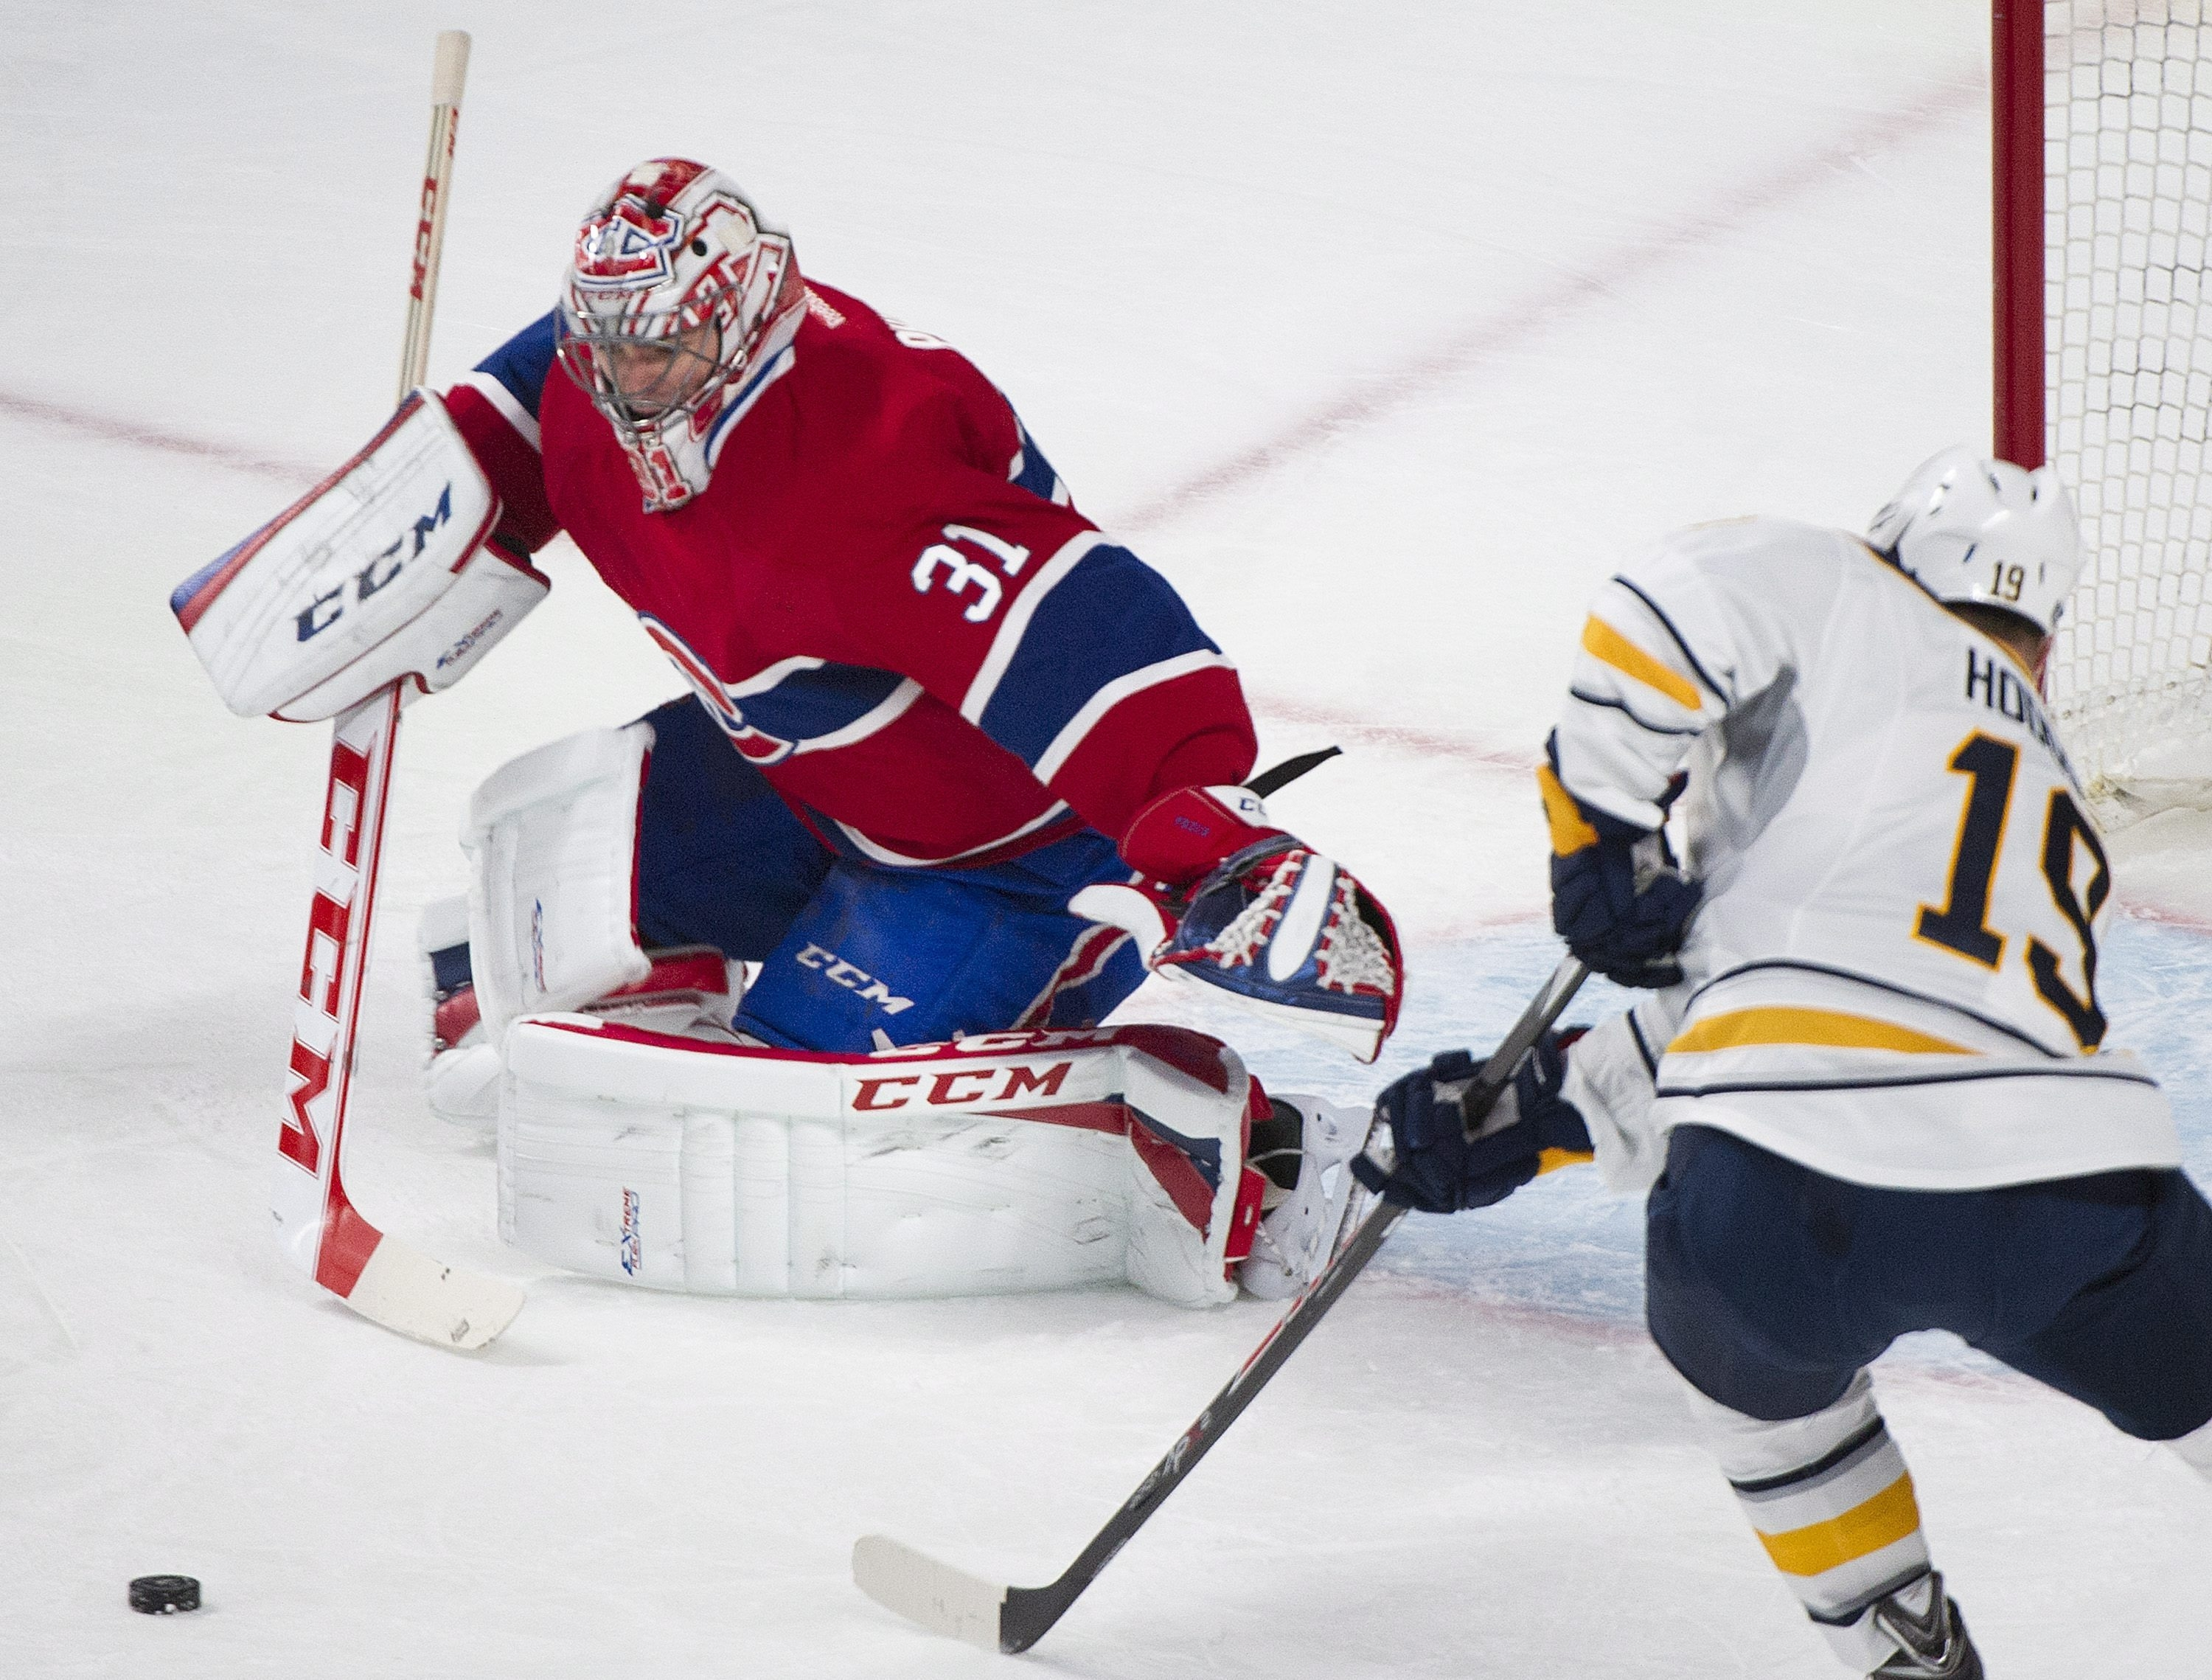 Montreal Canadiens goalie Carey Price makes a save against Cody Hodgson of the Sabres in the first period of Tuesday night's game in the Bell Centre.